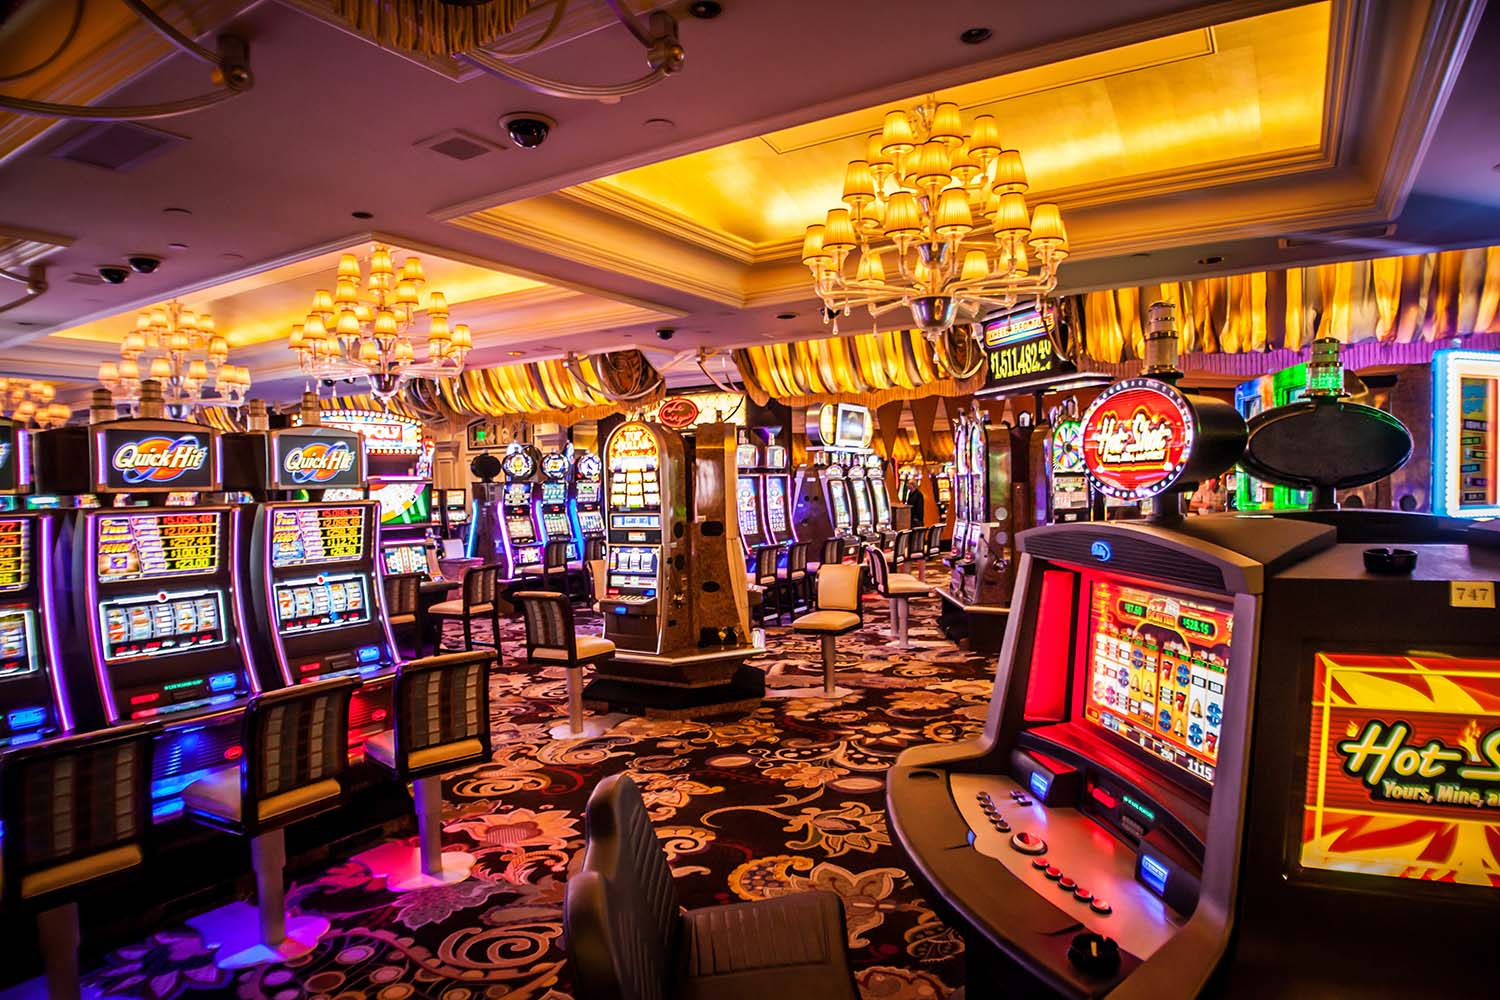 Will Covid Compliance Permanently Alter the Landscape of Casino Design?